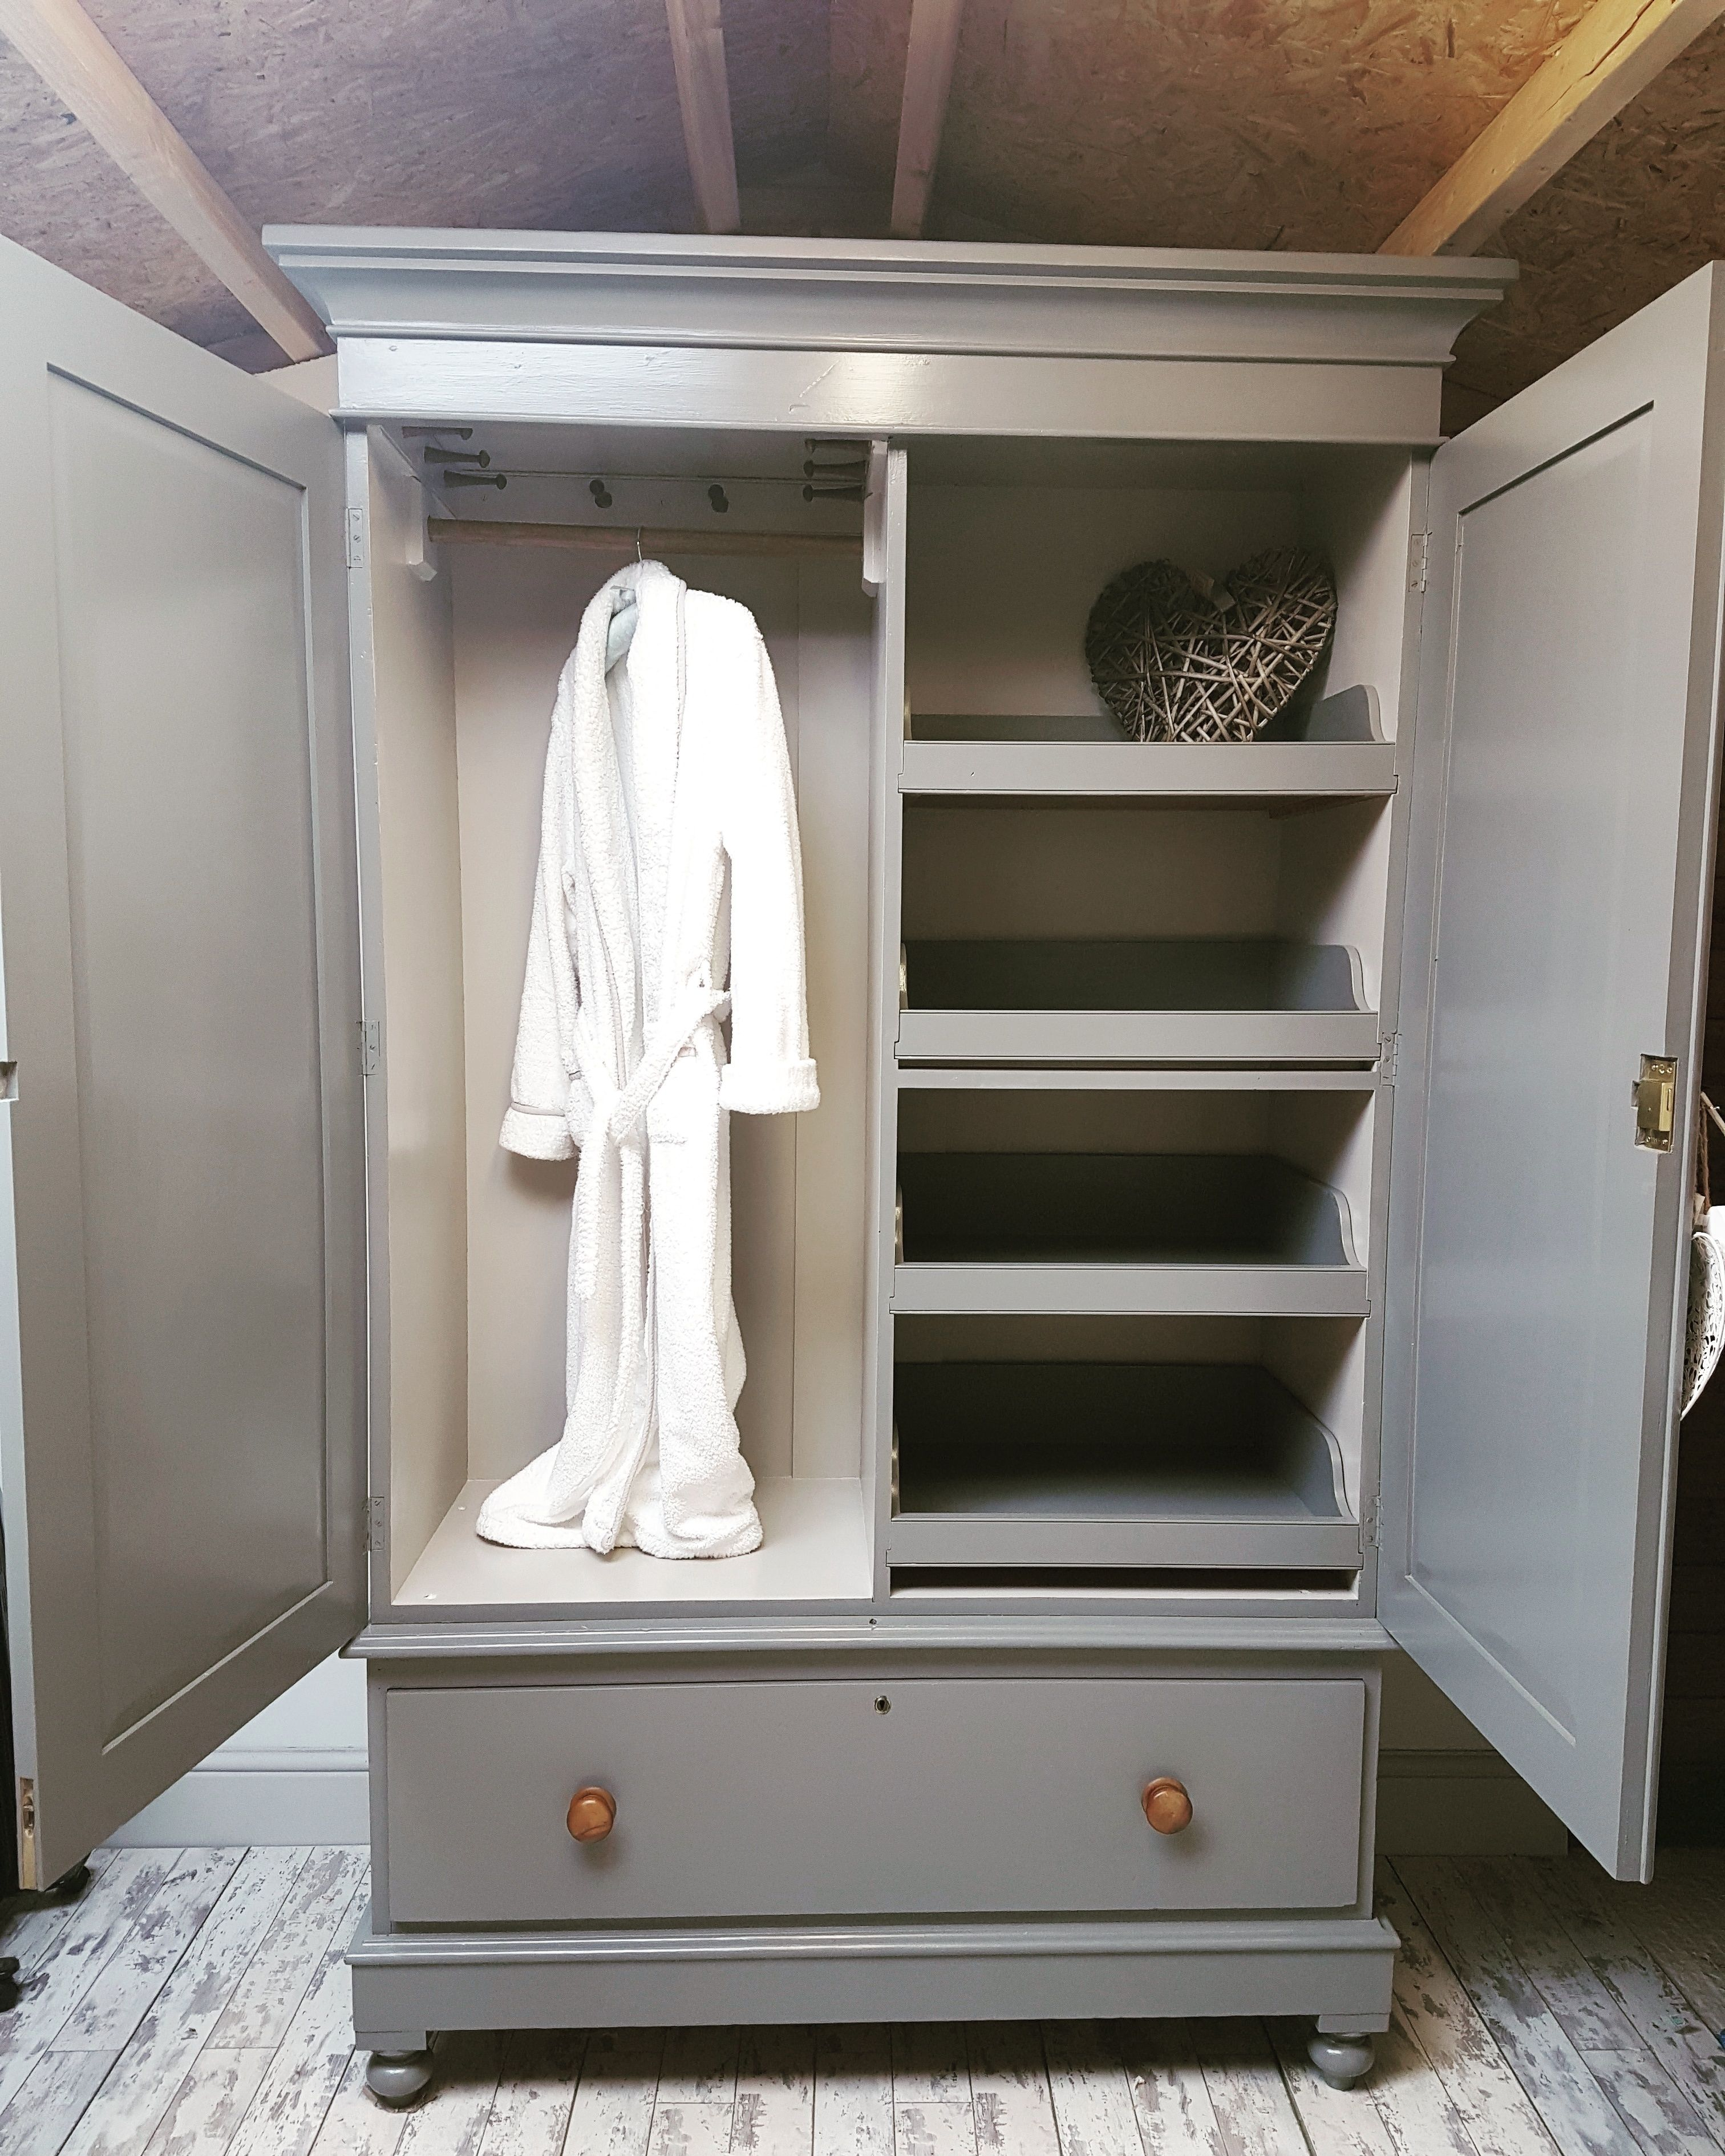 latest within visthus of grey showing attachment wardrobe photos gallery storages white furniture accent explore cm wardrobes ikea